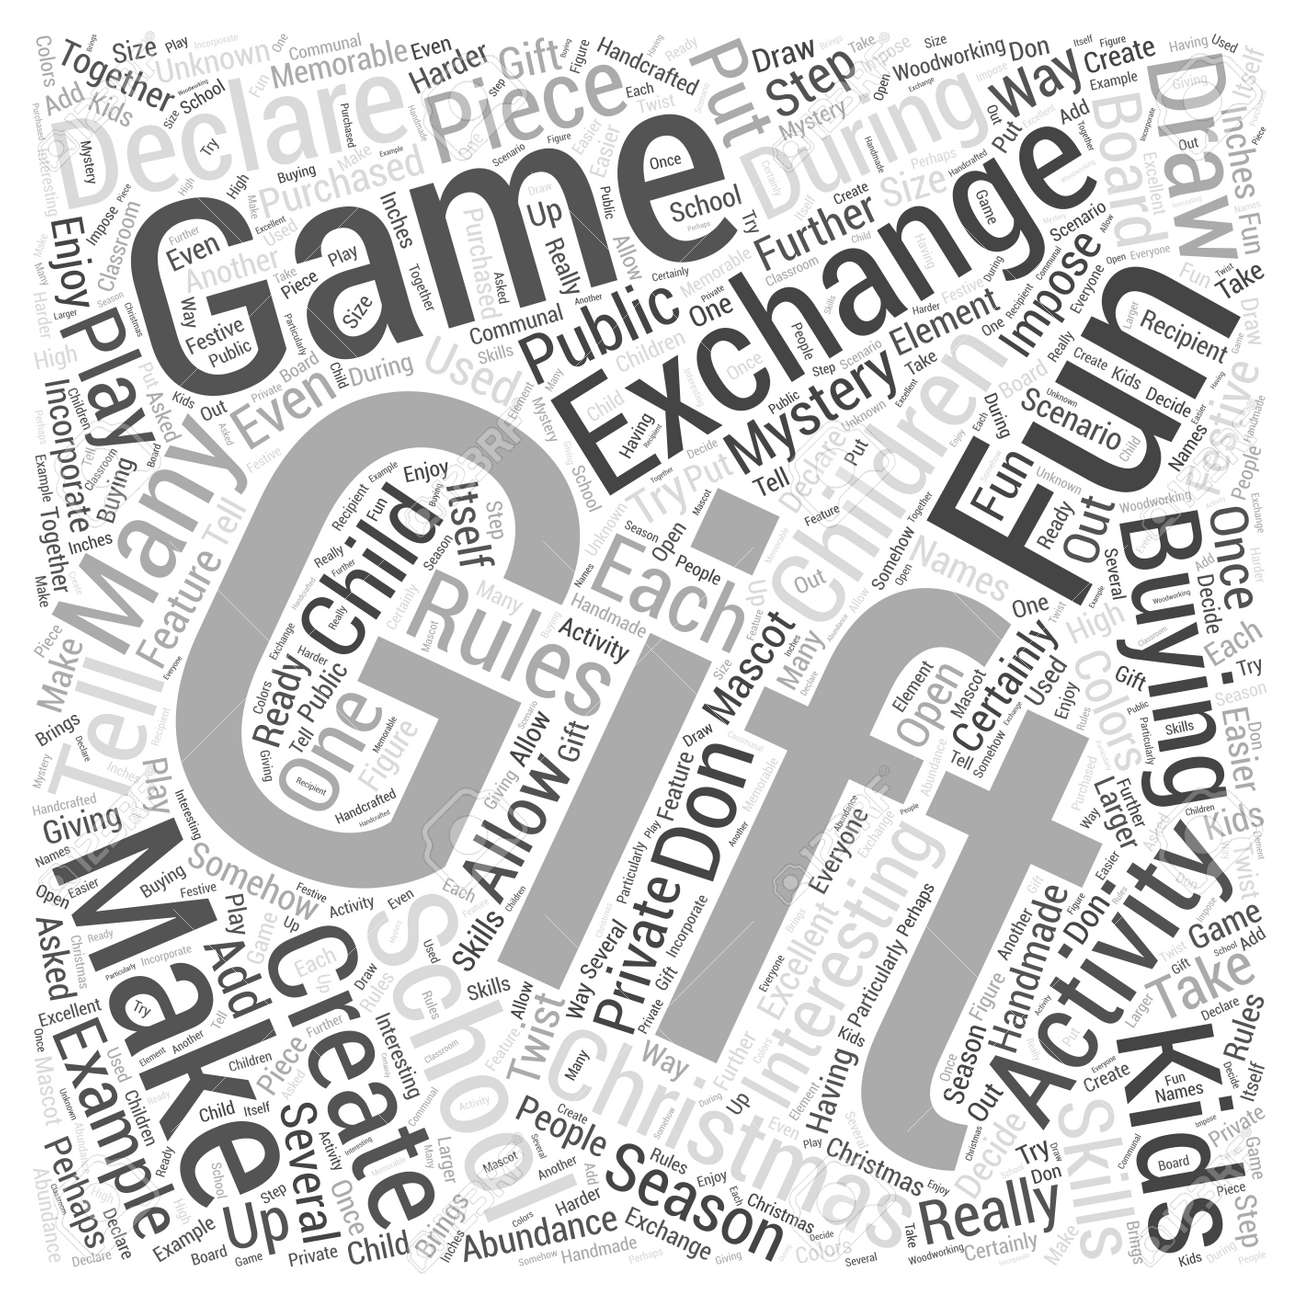 School Christmas Gift Exchange Games Word Cloud Concept Royalty Free ...